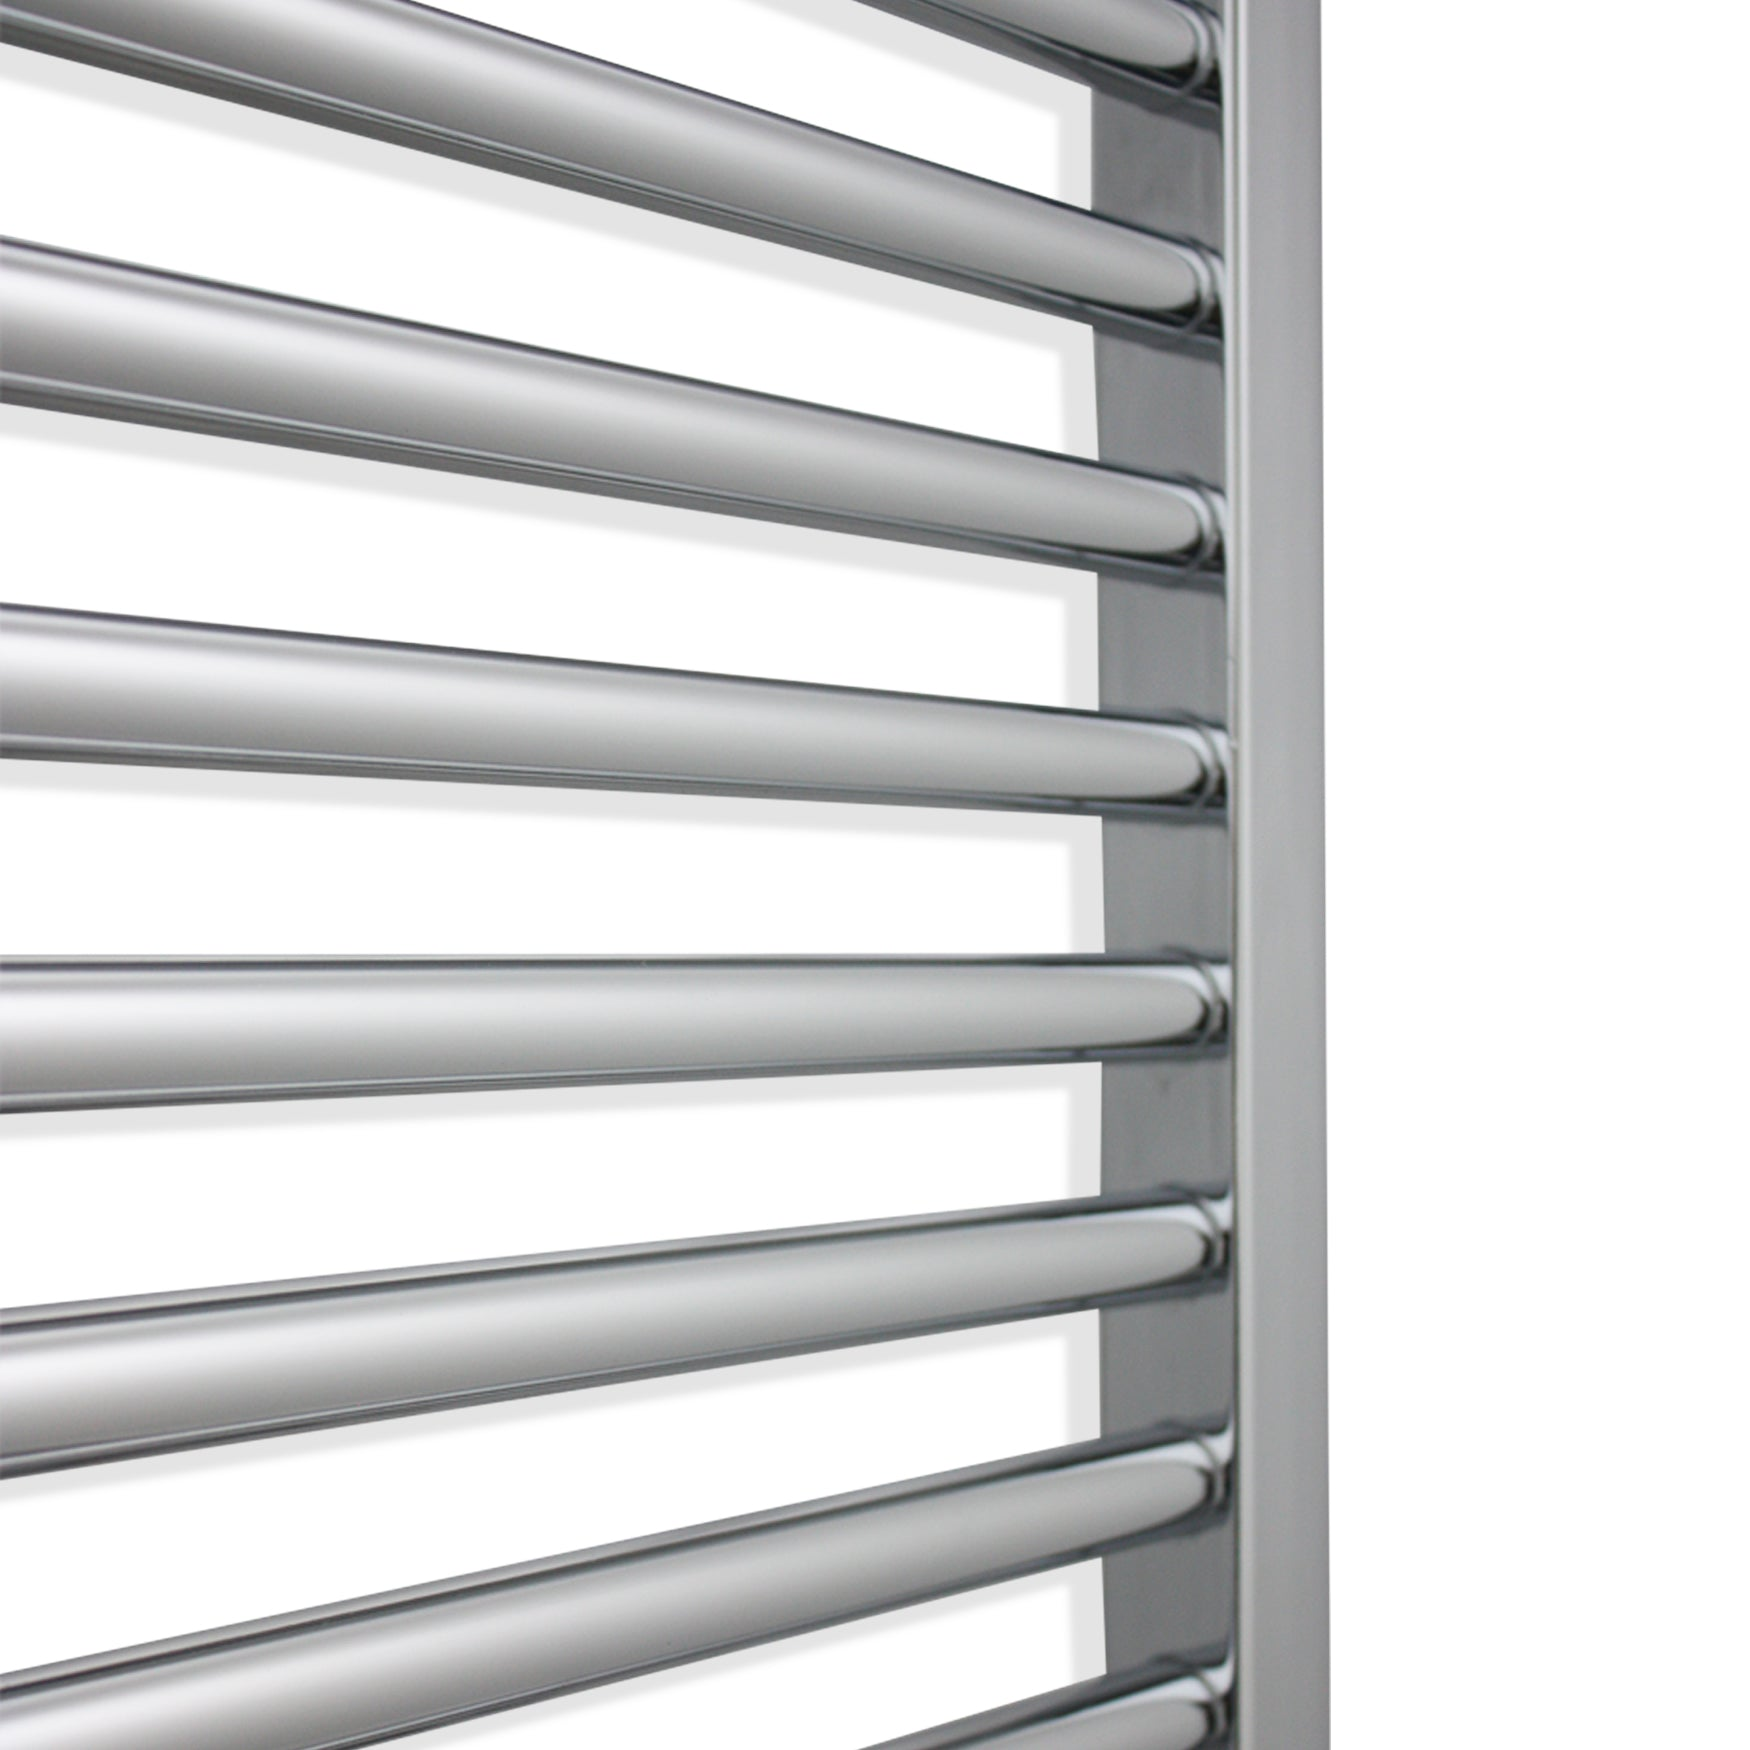 750mm Wide 600mm High Flat Or Curved Chrome Pre-Filled Electric Heated Towel Rail Radiator HTR